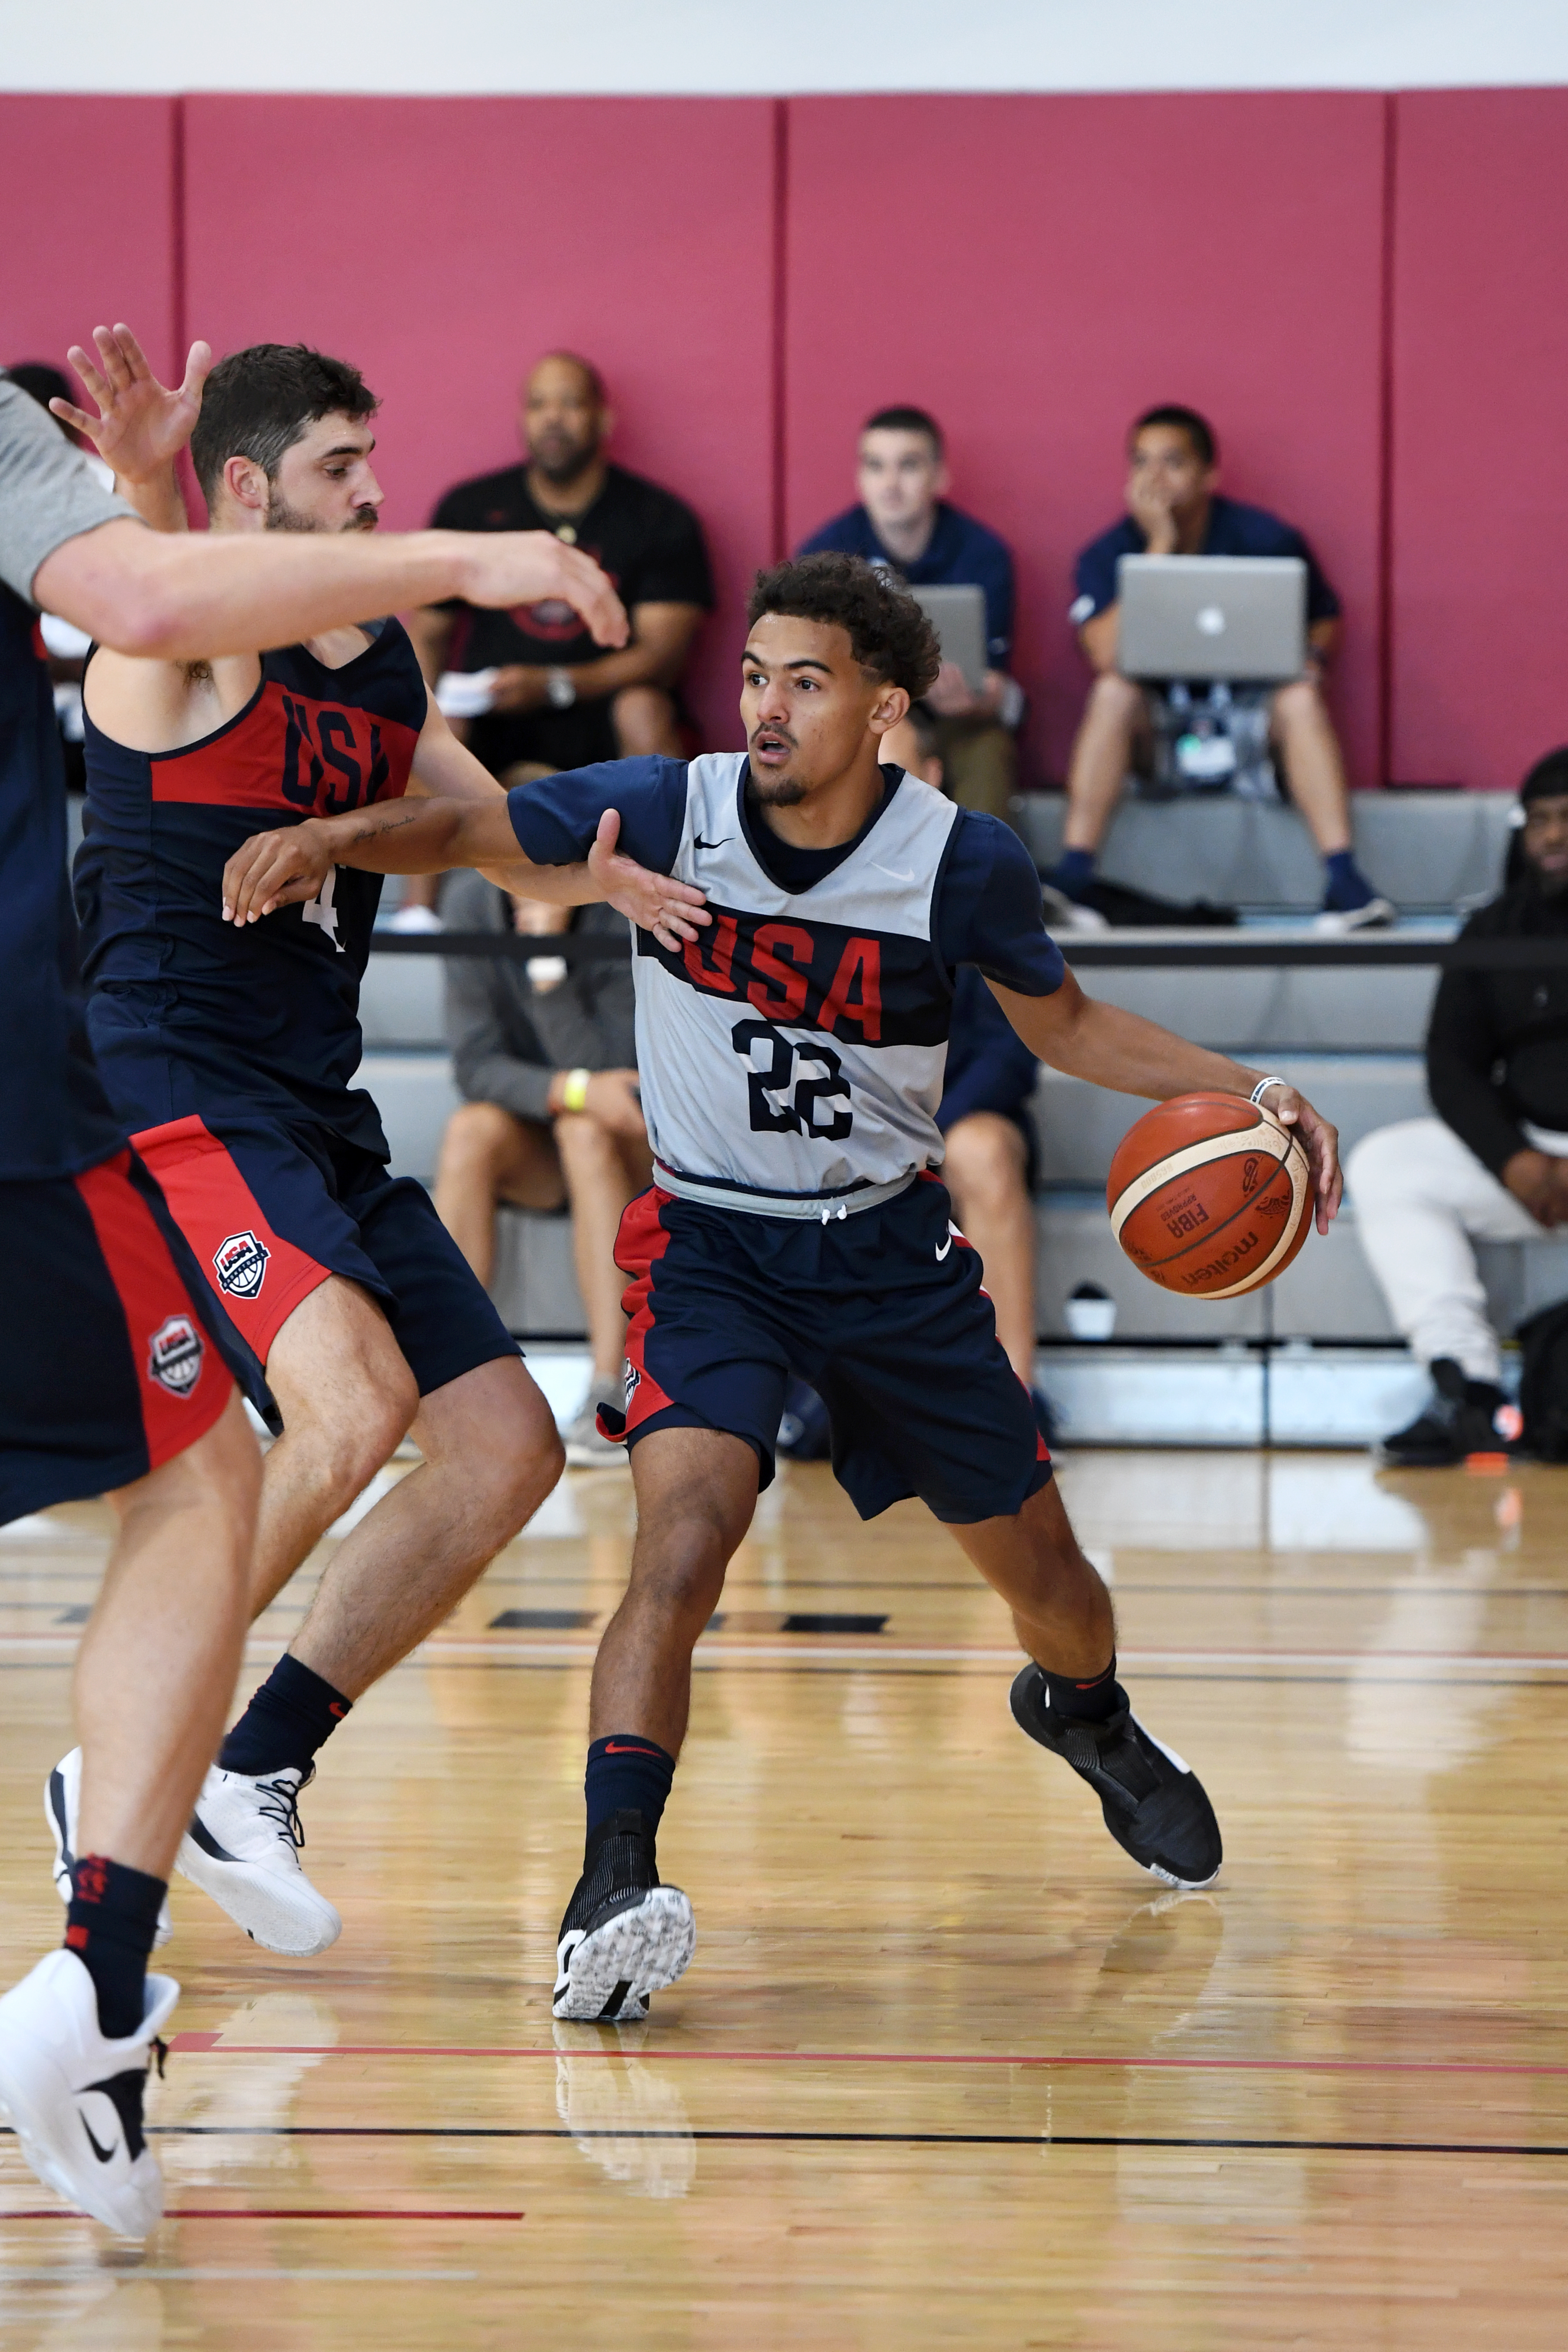 MINOR INJURY FORCES TRAE YOUNG TO LEAVE USA BASKETBALL